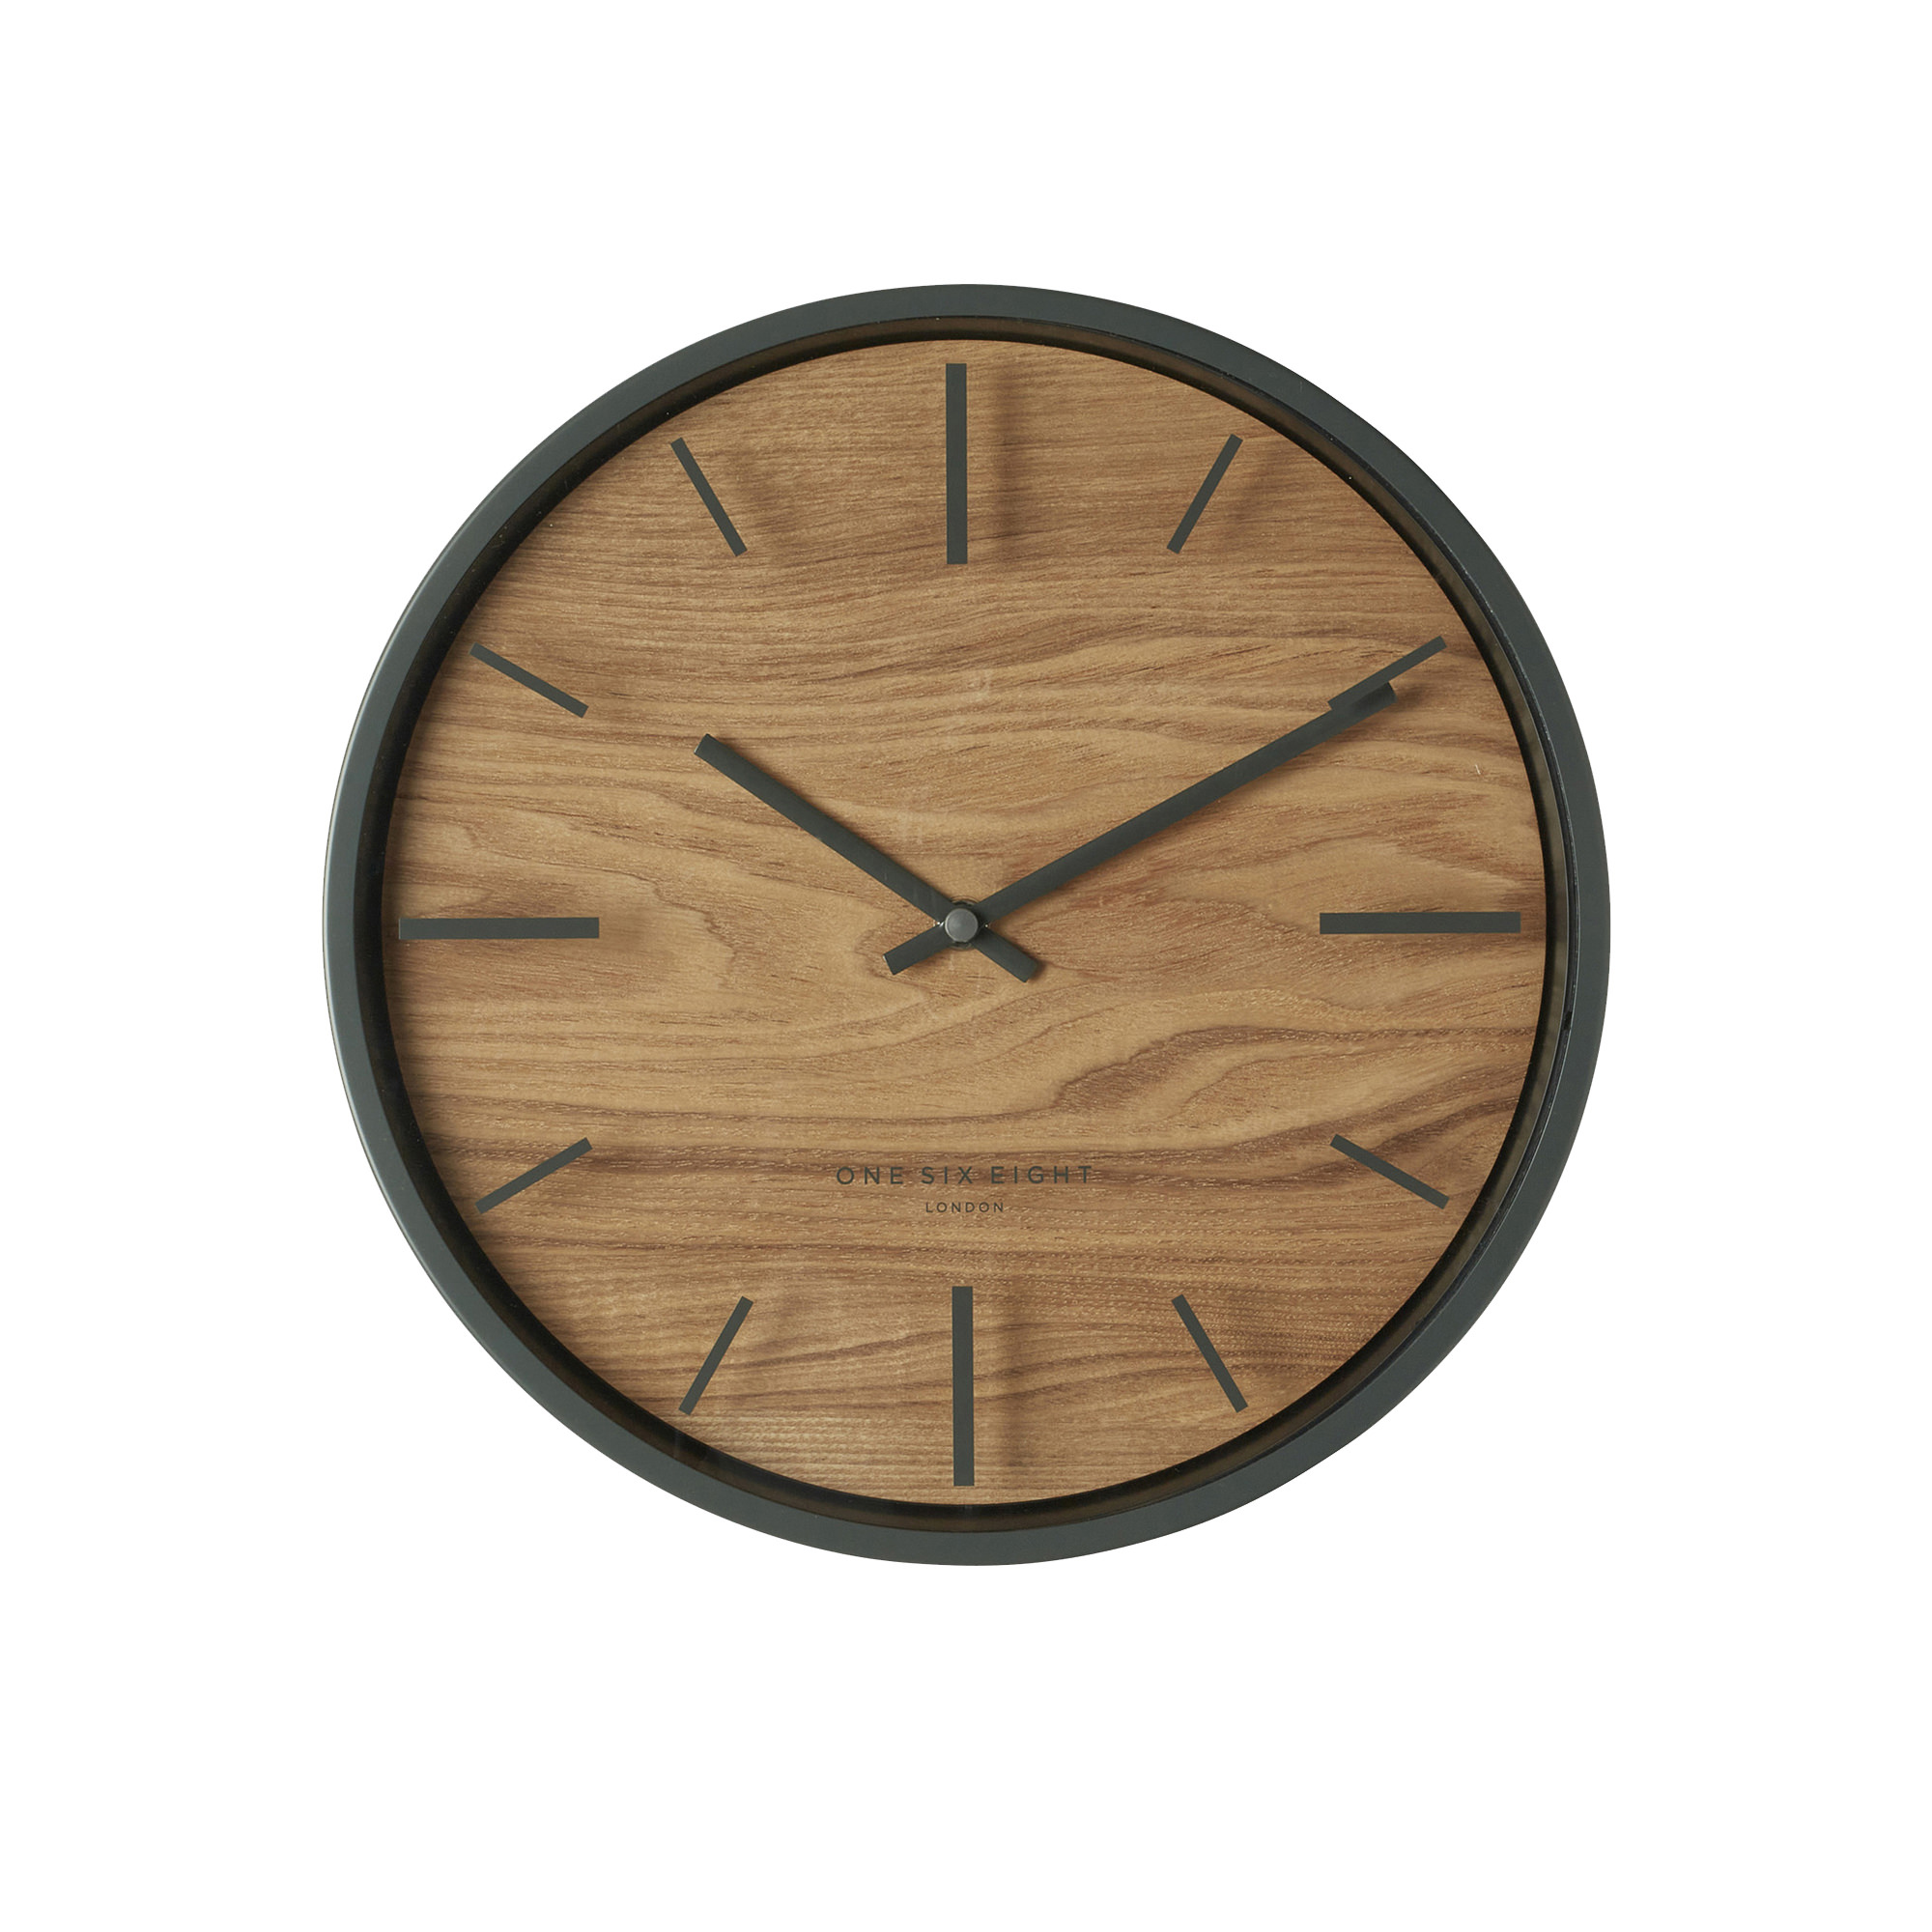 One Six Eight London Willow Silent Wall Clock 30cm Charcoal Grey